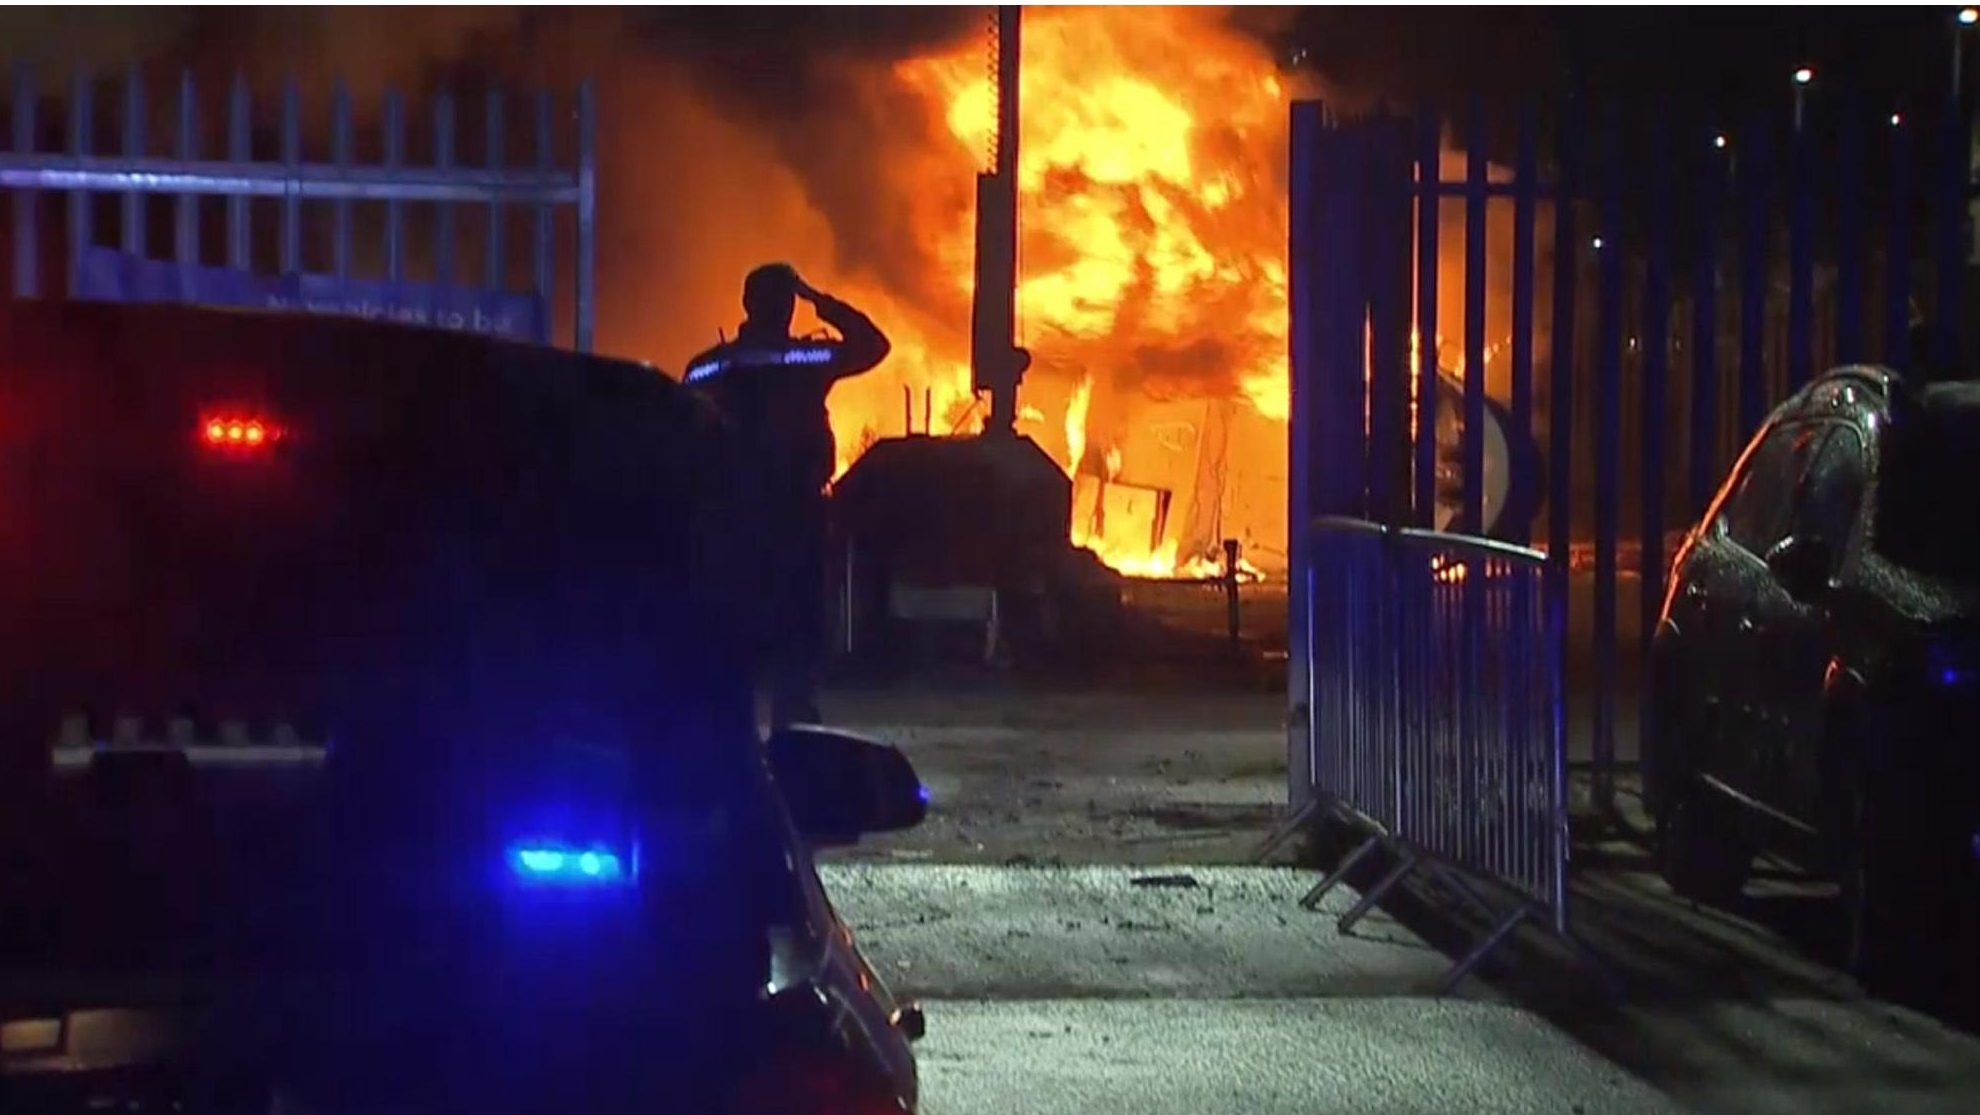 A cordon was created around the flames as the area was evacuated